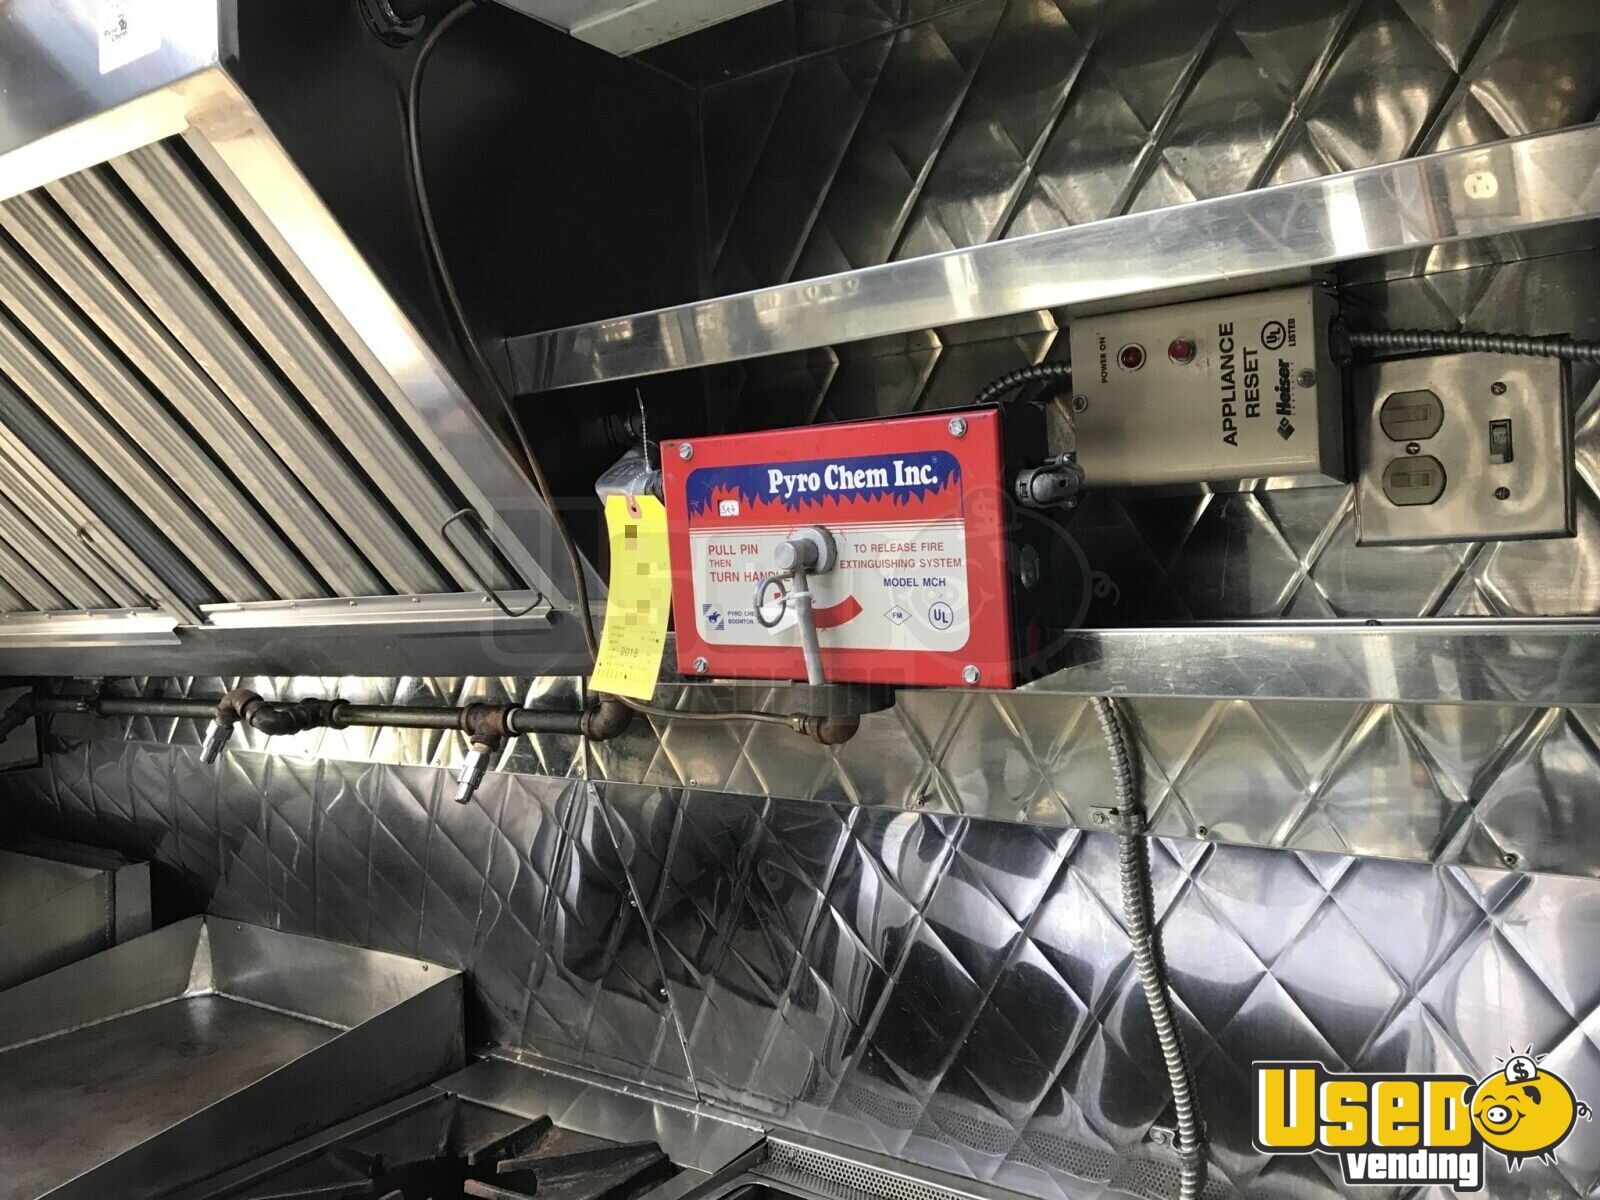 2004 Ford Ecovan All-purpose Food Truck Stainless Steel Wall Covers Rhode Island Gas Engine for Sale - 6